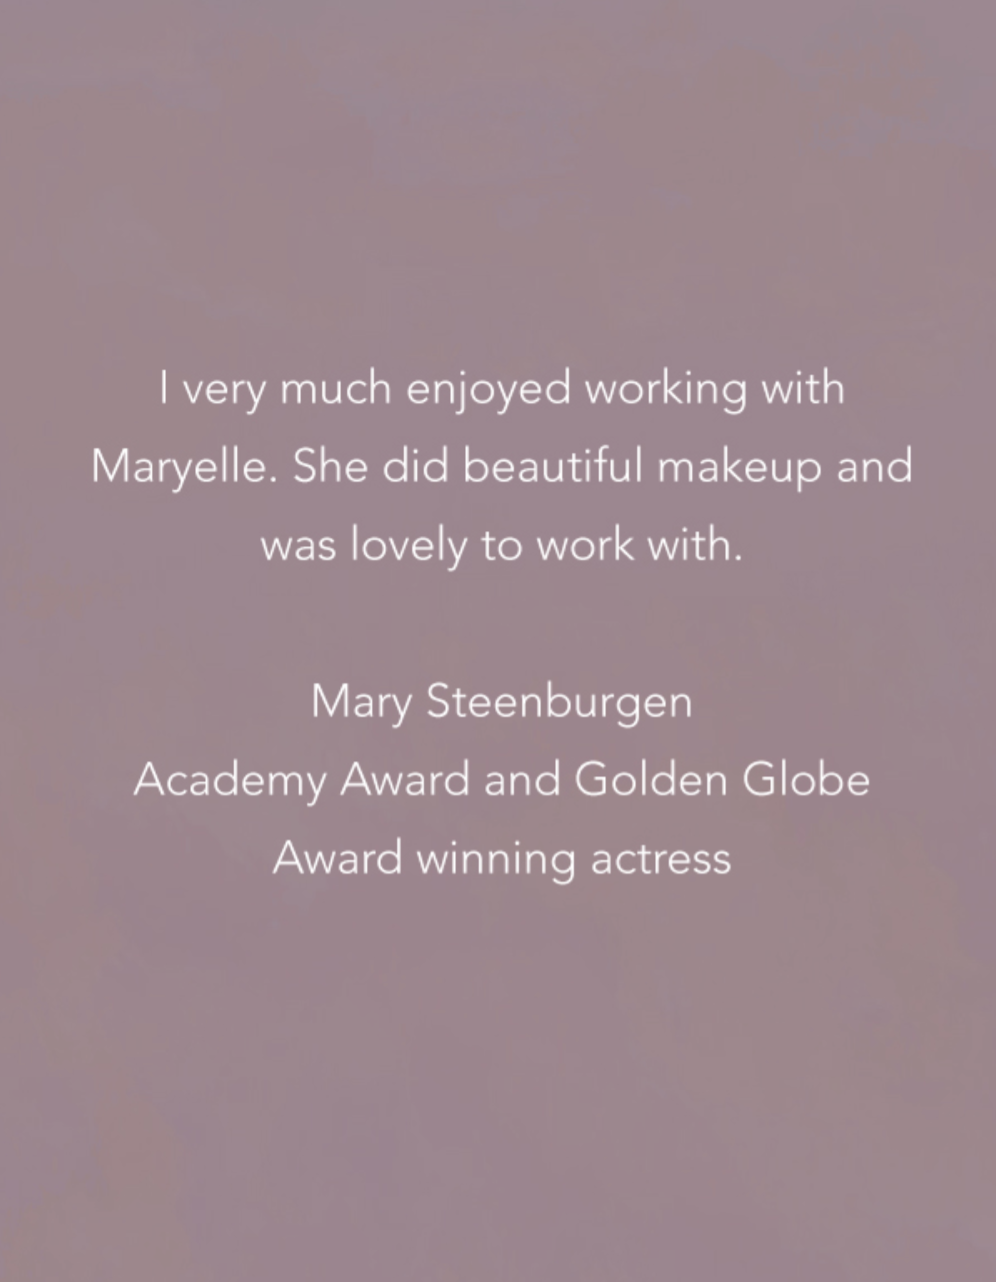 Testimonial from Mary Steenburgen, Oscar-winning Actress